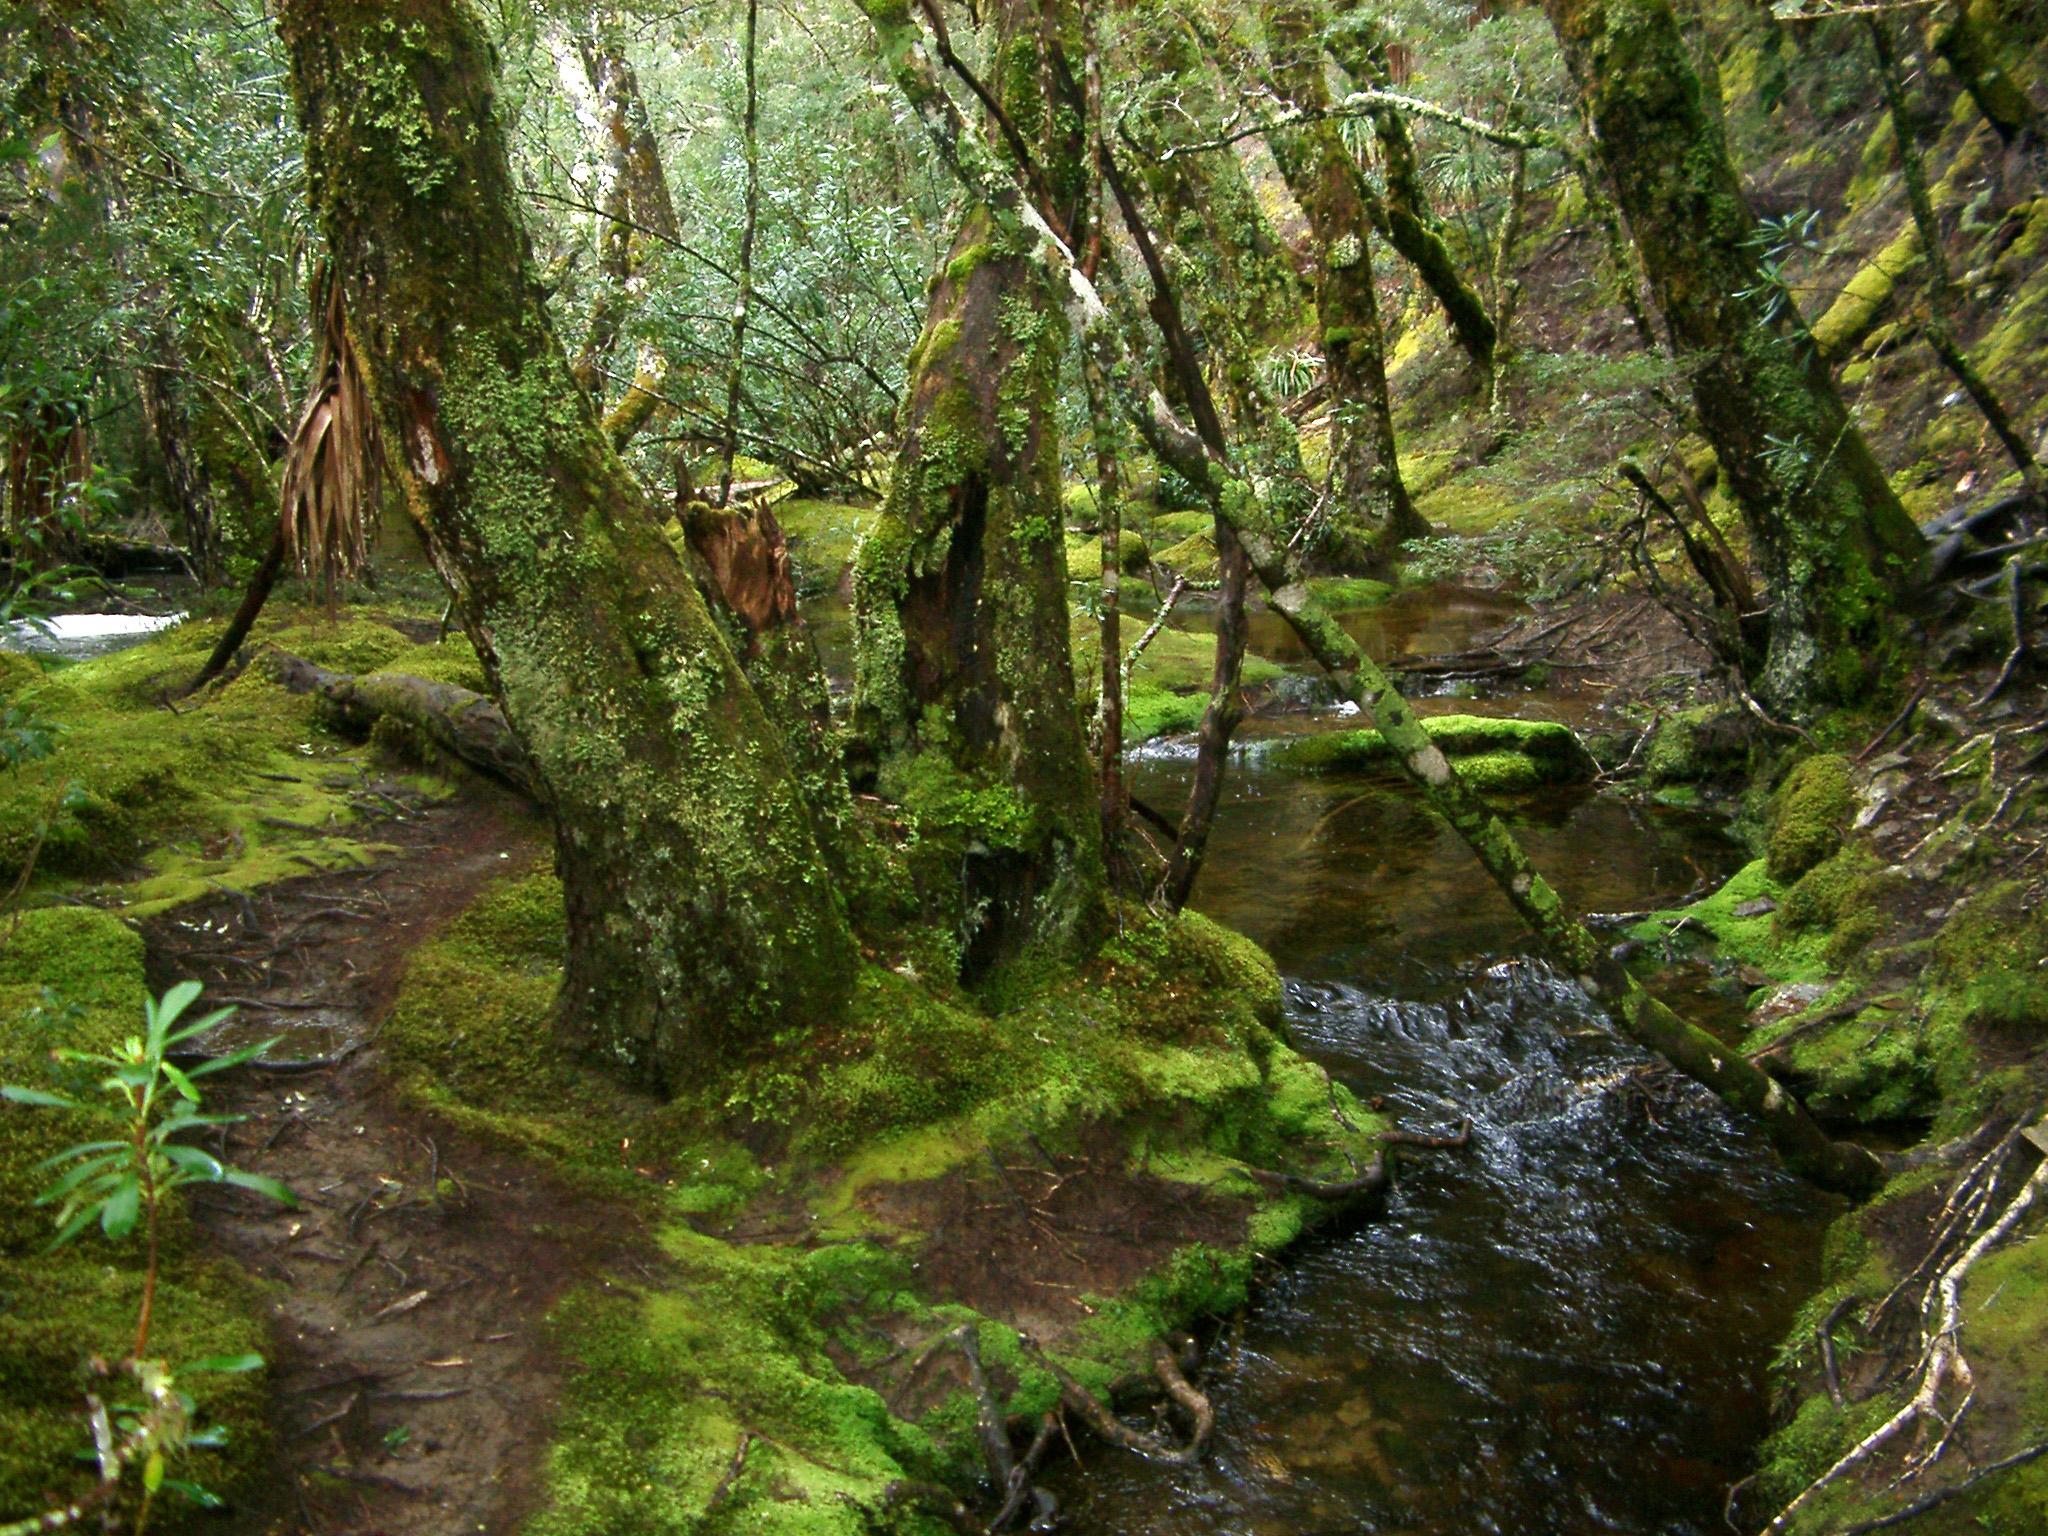 New England Fall Themed Wallpaper Free Stock Photo Of Woodland Glade With A Mossy River